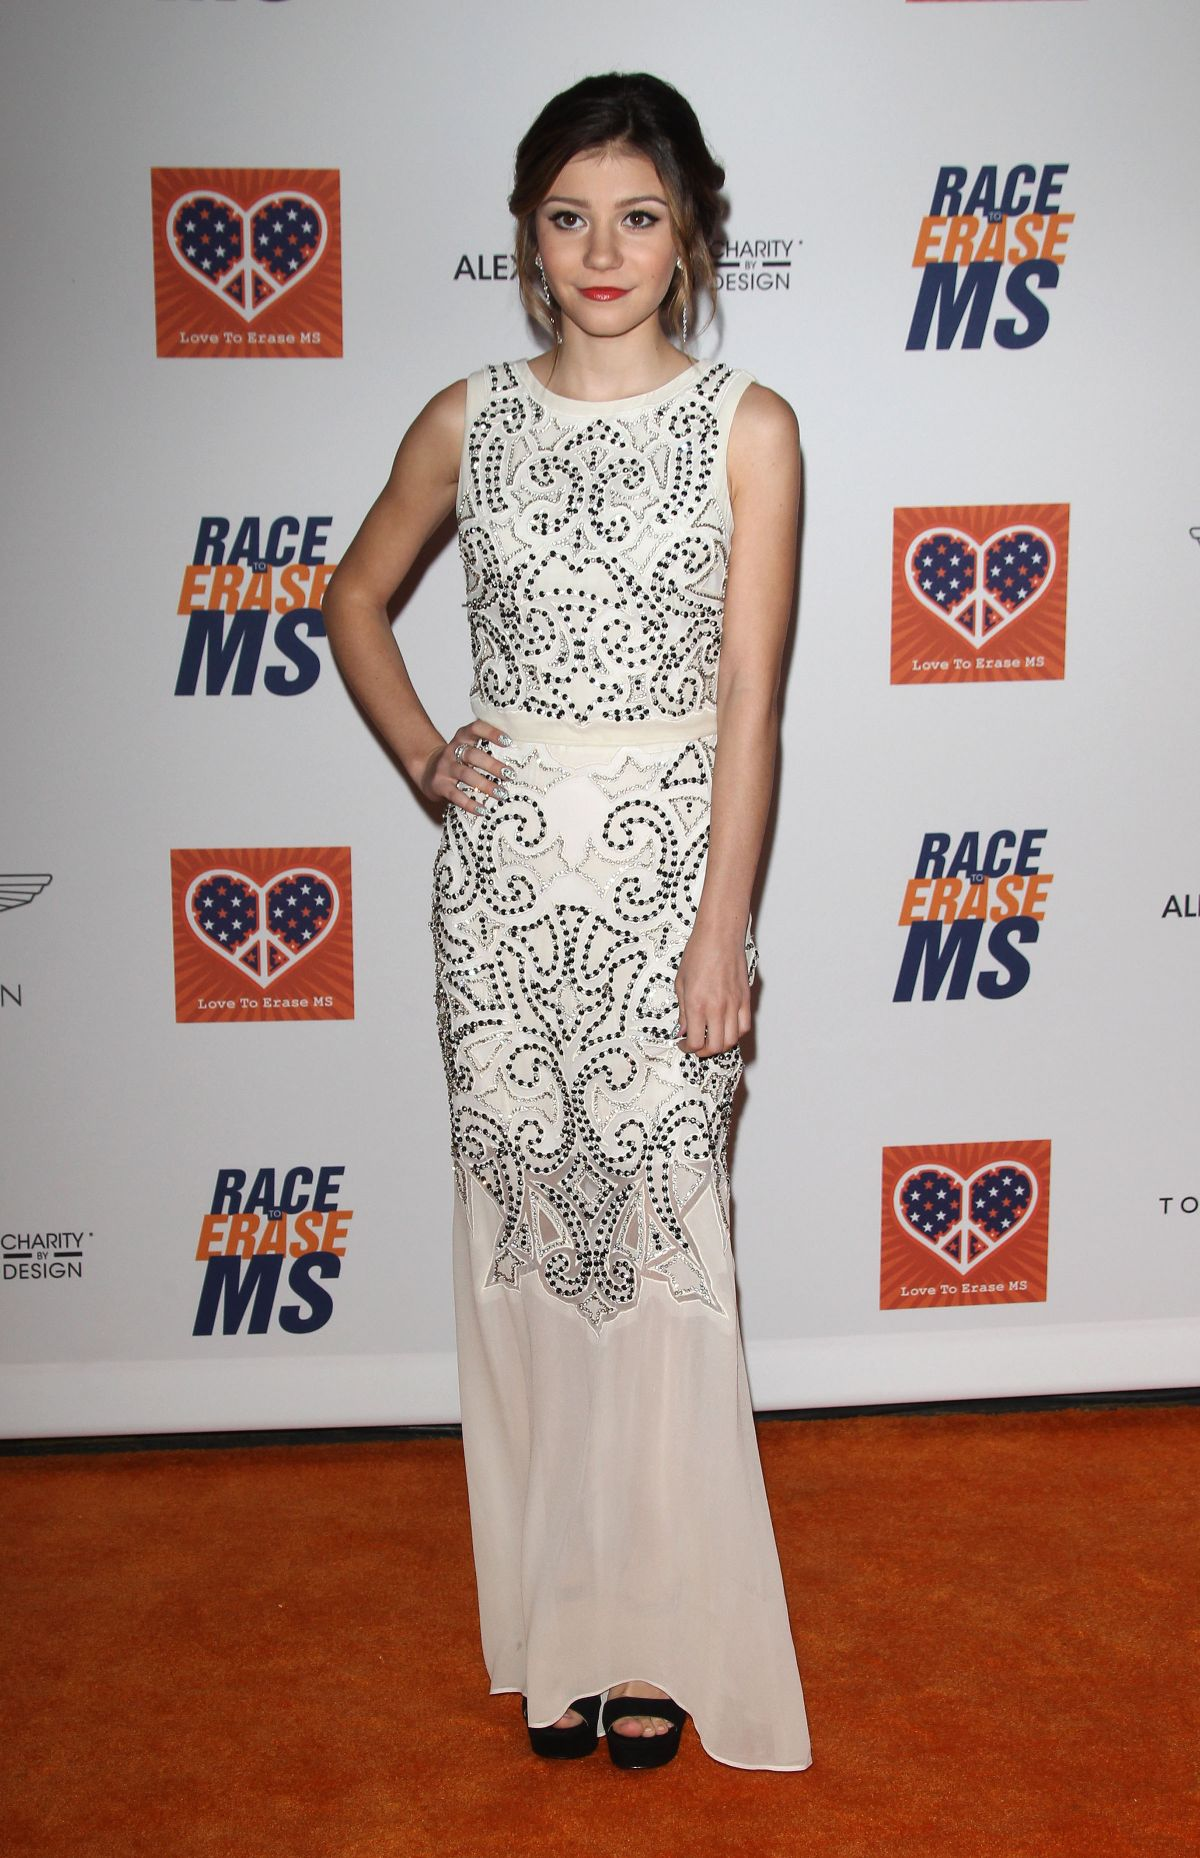 GENEVIEVE HANNELIUS at 2015 Race to Erase MS Event in Century City